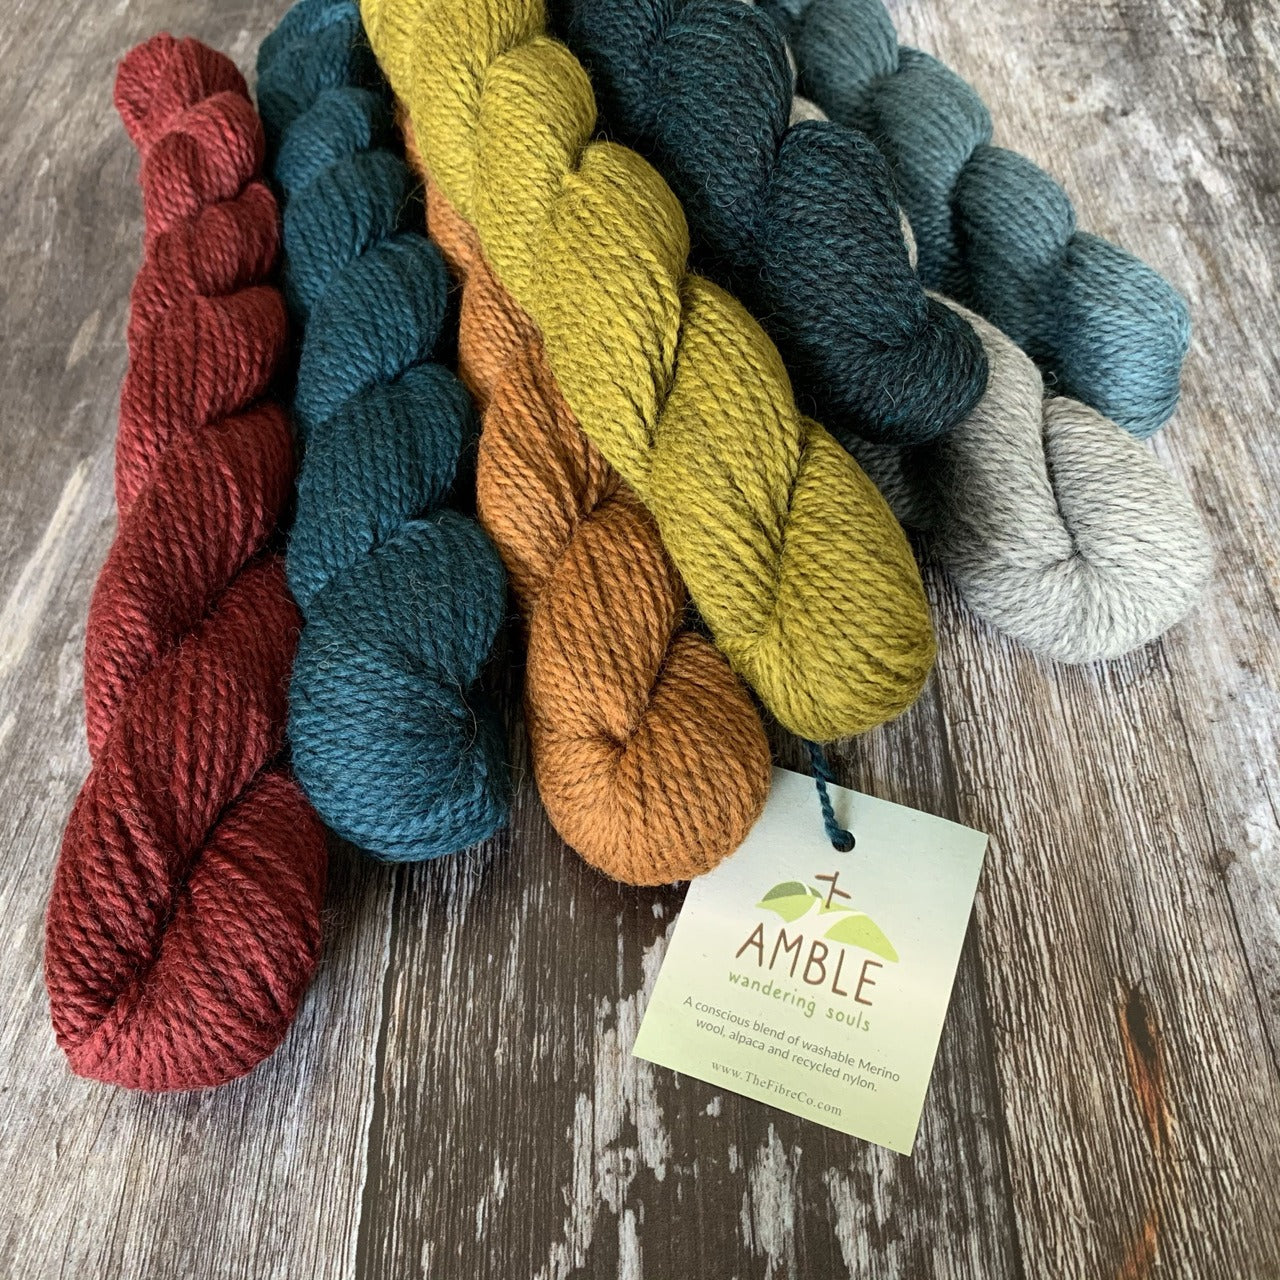 The Fibre Co. The Fibre Co. Amble Minis -  - 4ply Knitting Yarn